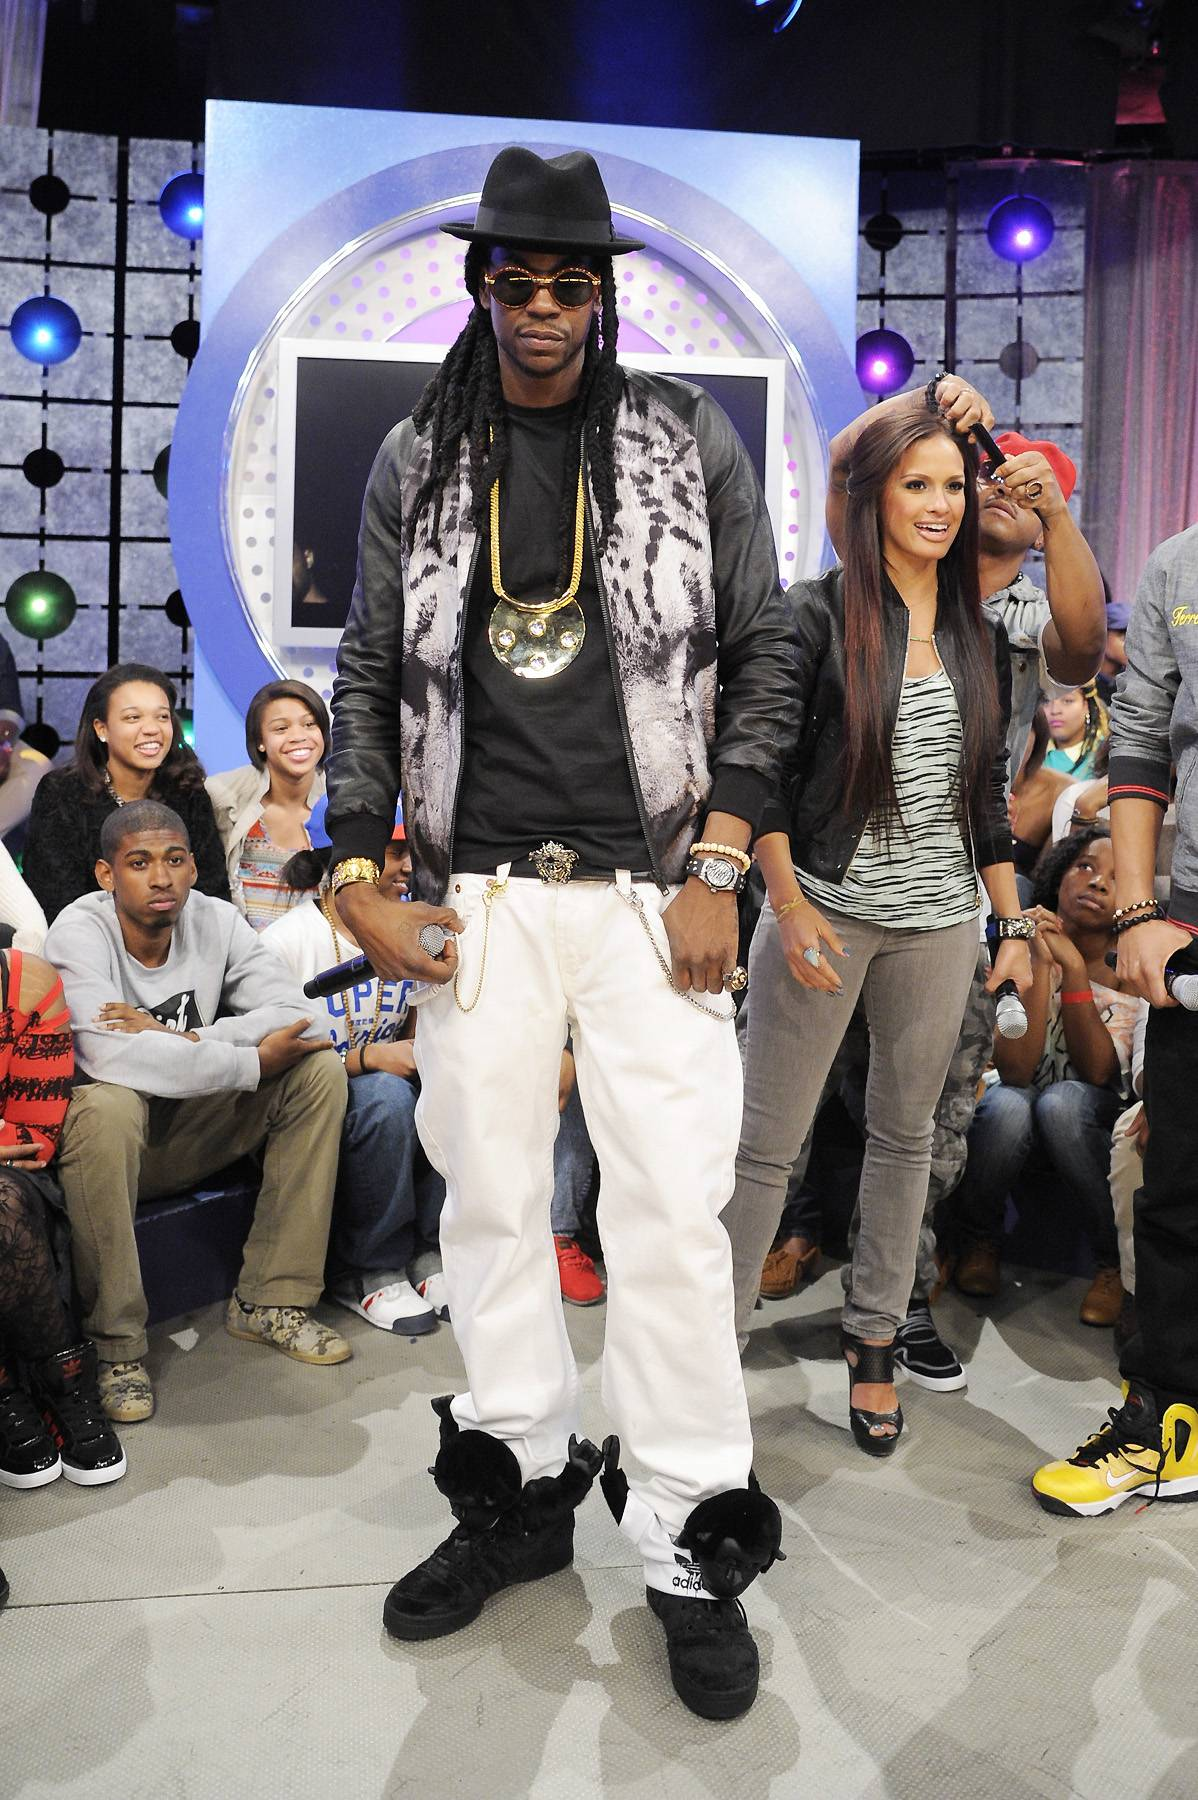 The Crew - Kanye West, 2 Chainz, Rocsi Diaz and Terrence J at 106 & Park, April 9, 2012. (photo: John Ricard / BET).